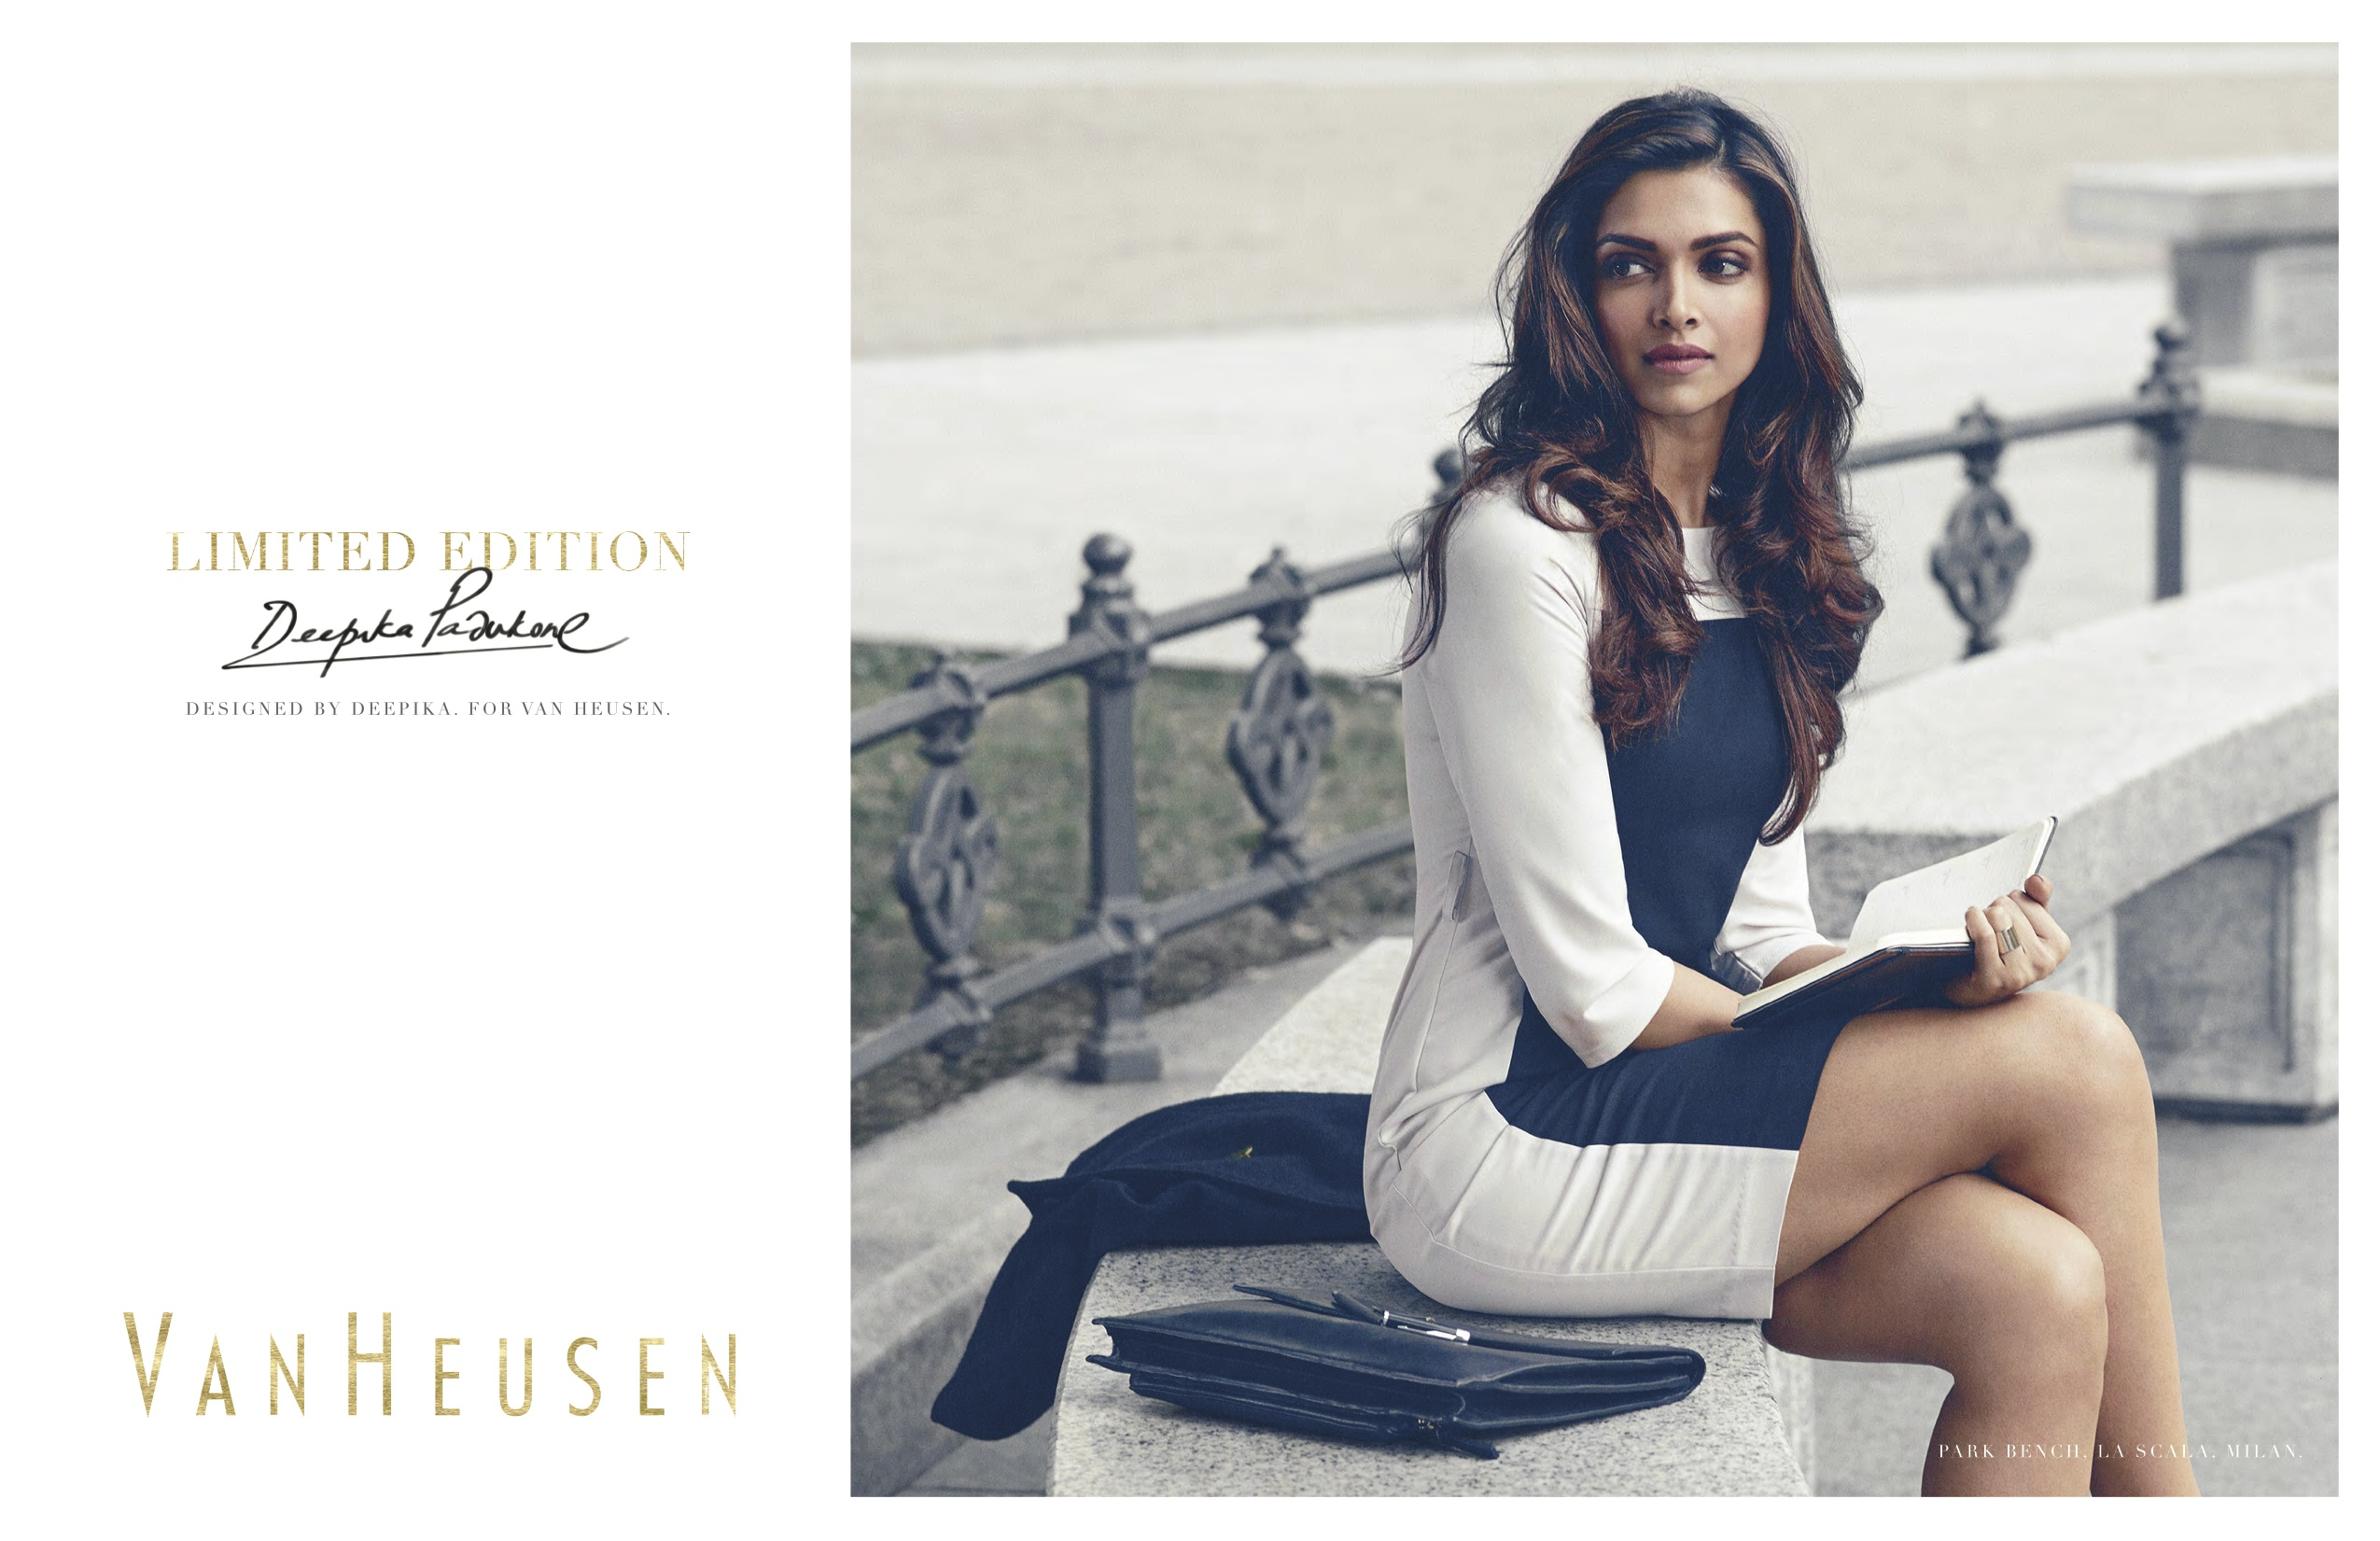 VanHeusenIndiaFlyngPigsProductionItalyLuleproductionJustinPolkeyPhotoshootingFashionModelDeepikaPadukone_03